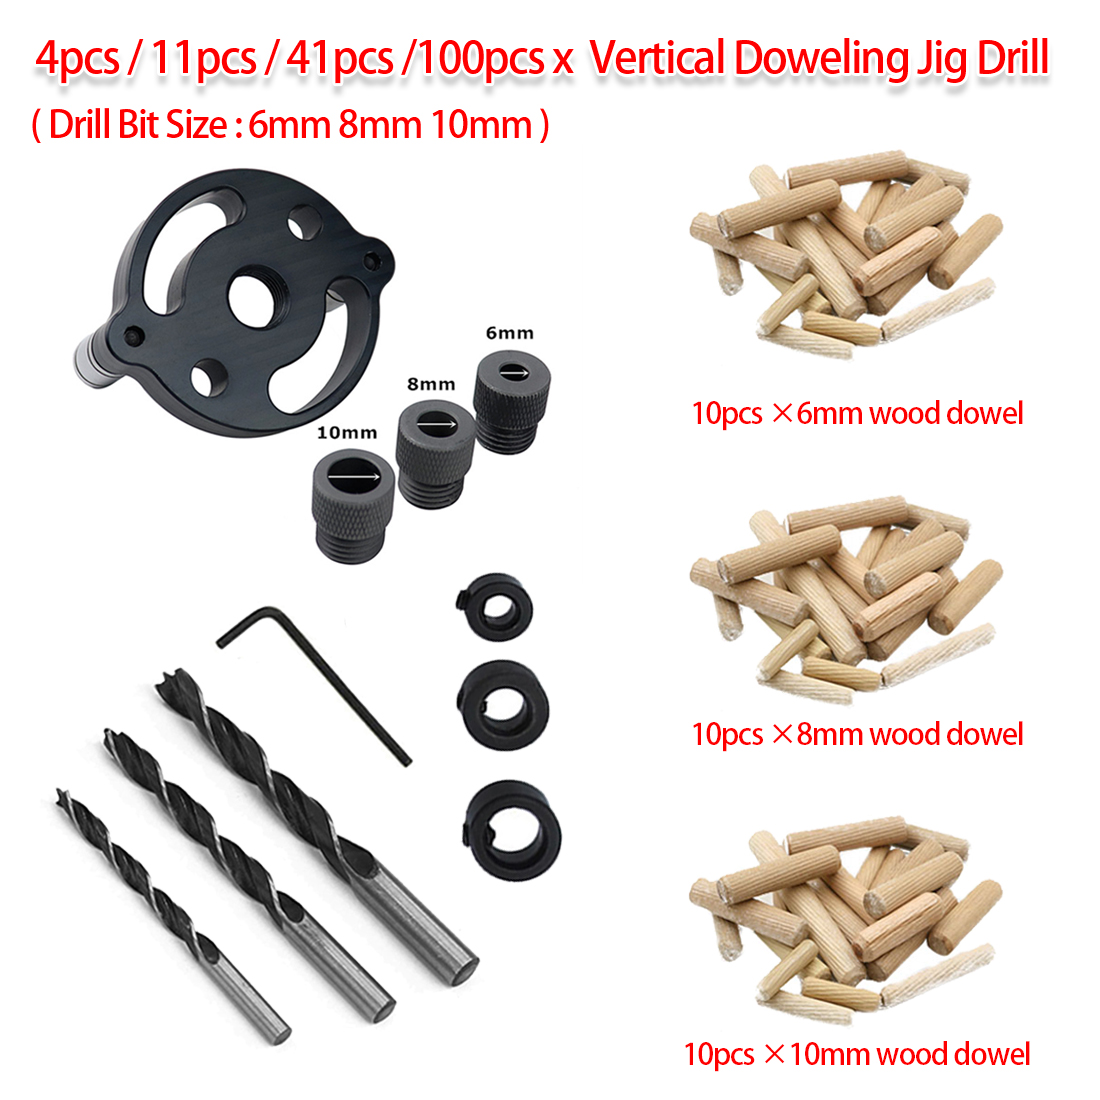 Doweling Jig 4pcs/11pcs/41pcs/100pcs Pocket Hole Tool Wood Vertical Drilling Detachable Locator For Hole Puncher Carpentry Tool